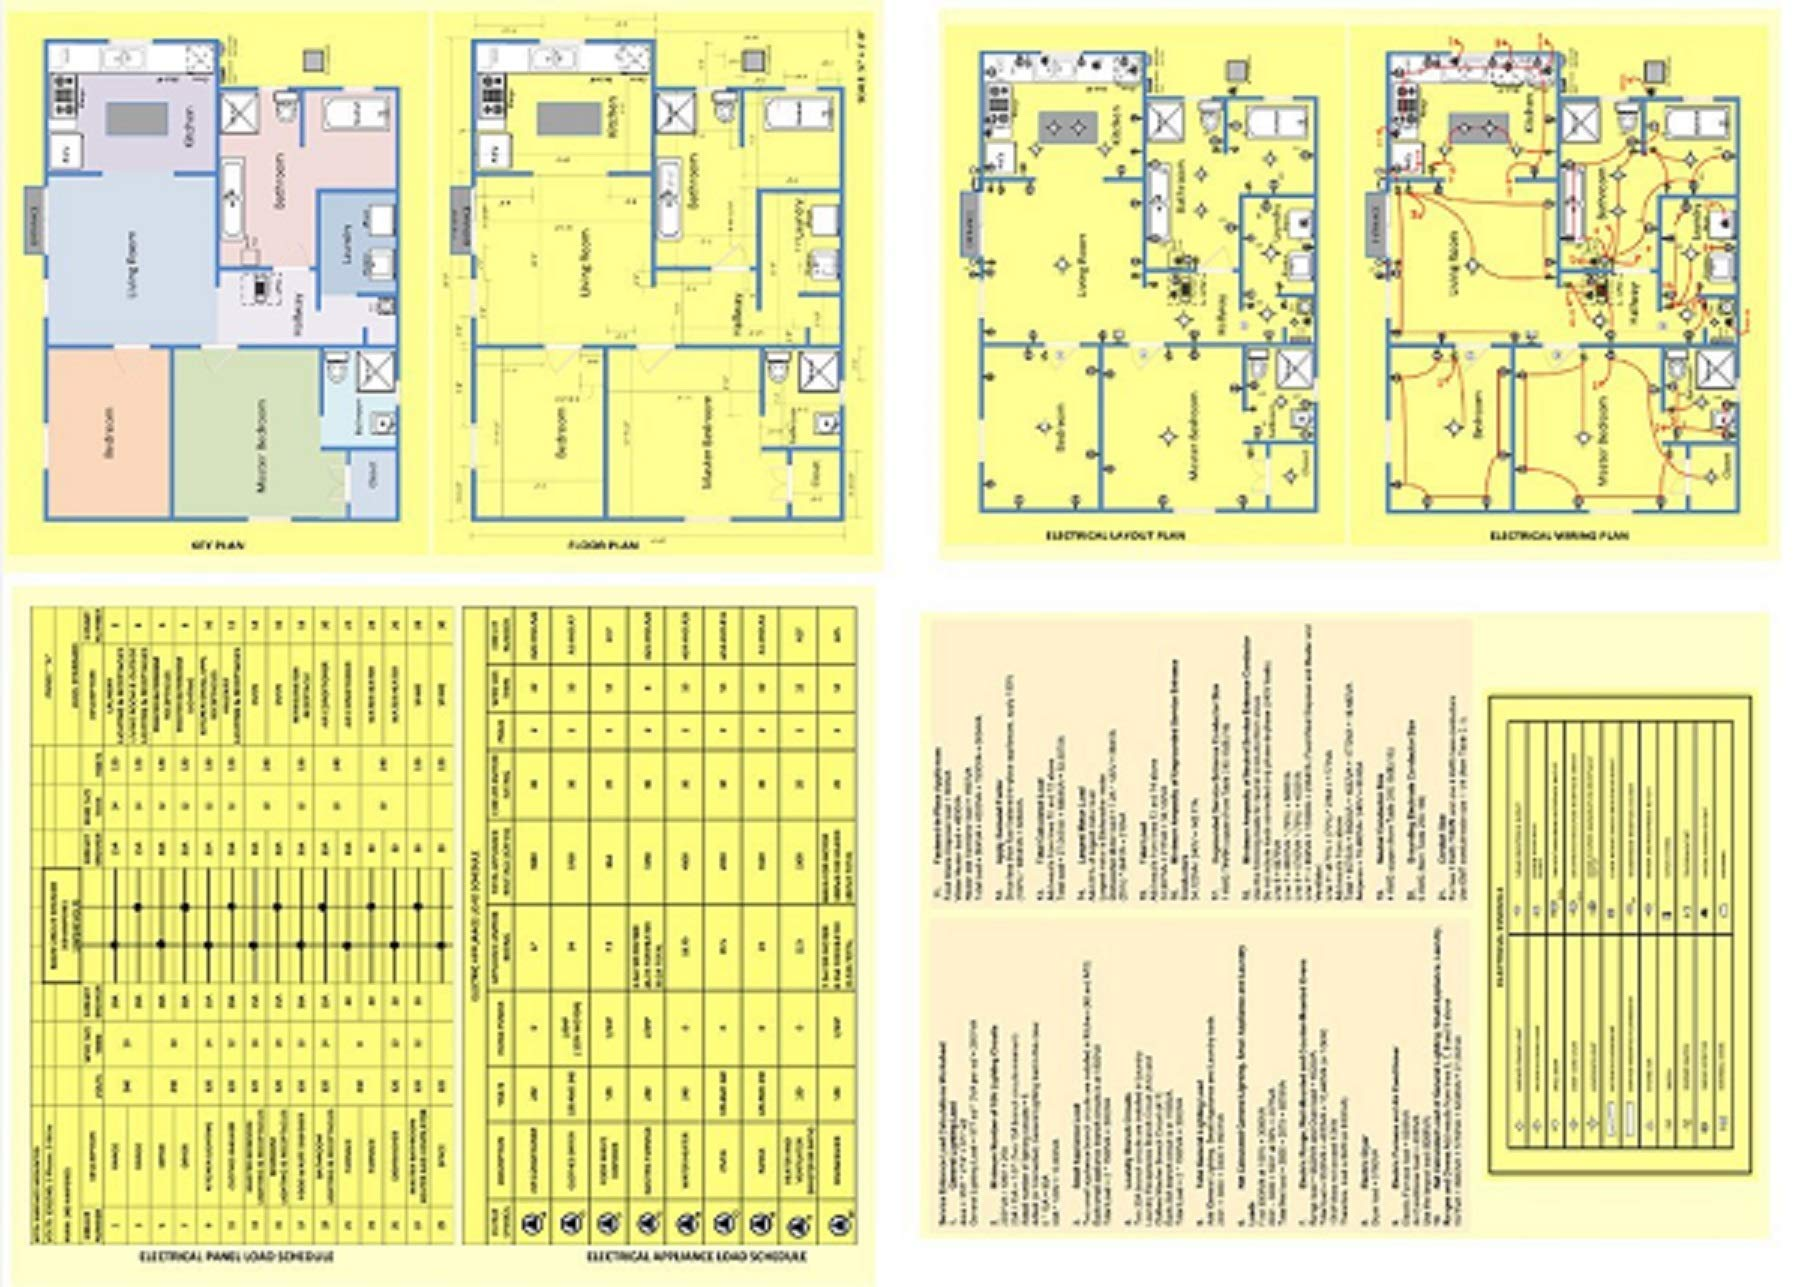 residential electrical wiring diagrams sample house plan layoutsresidential electrical wiring diagrams sample house plan layouts and calculations staple bound \u2013 abridged, 2016